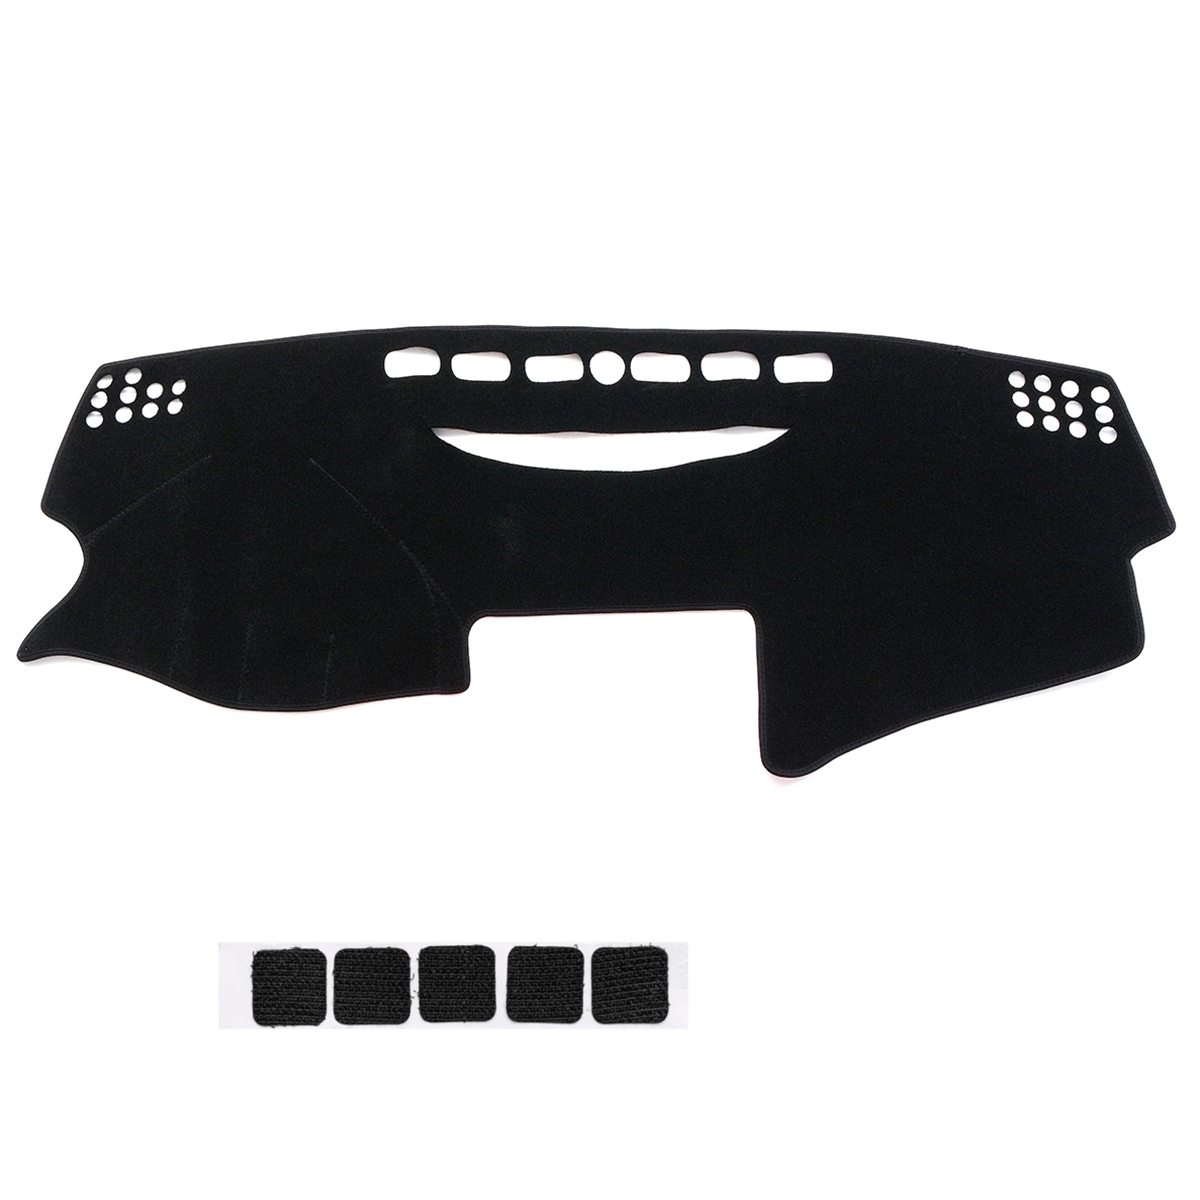 Black Left Hand Non-Slip Car Dash Mat Dashboard Cover Pad for Toyota Camry 2007-2011